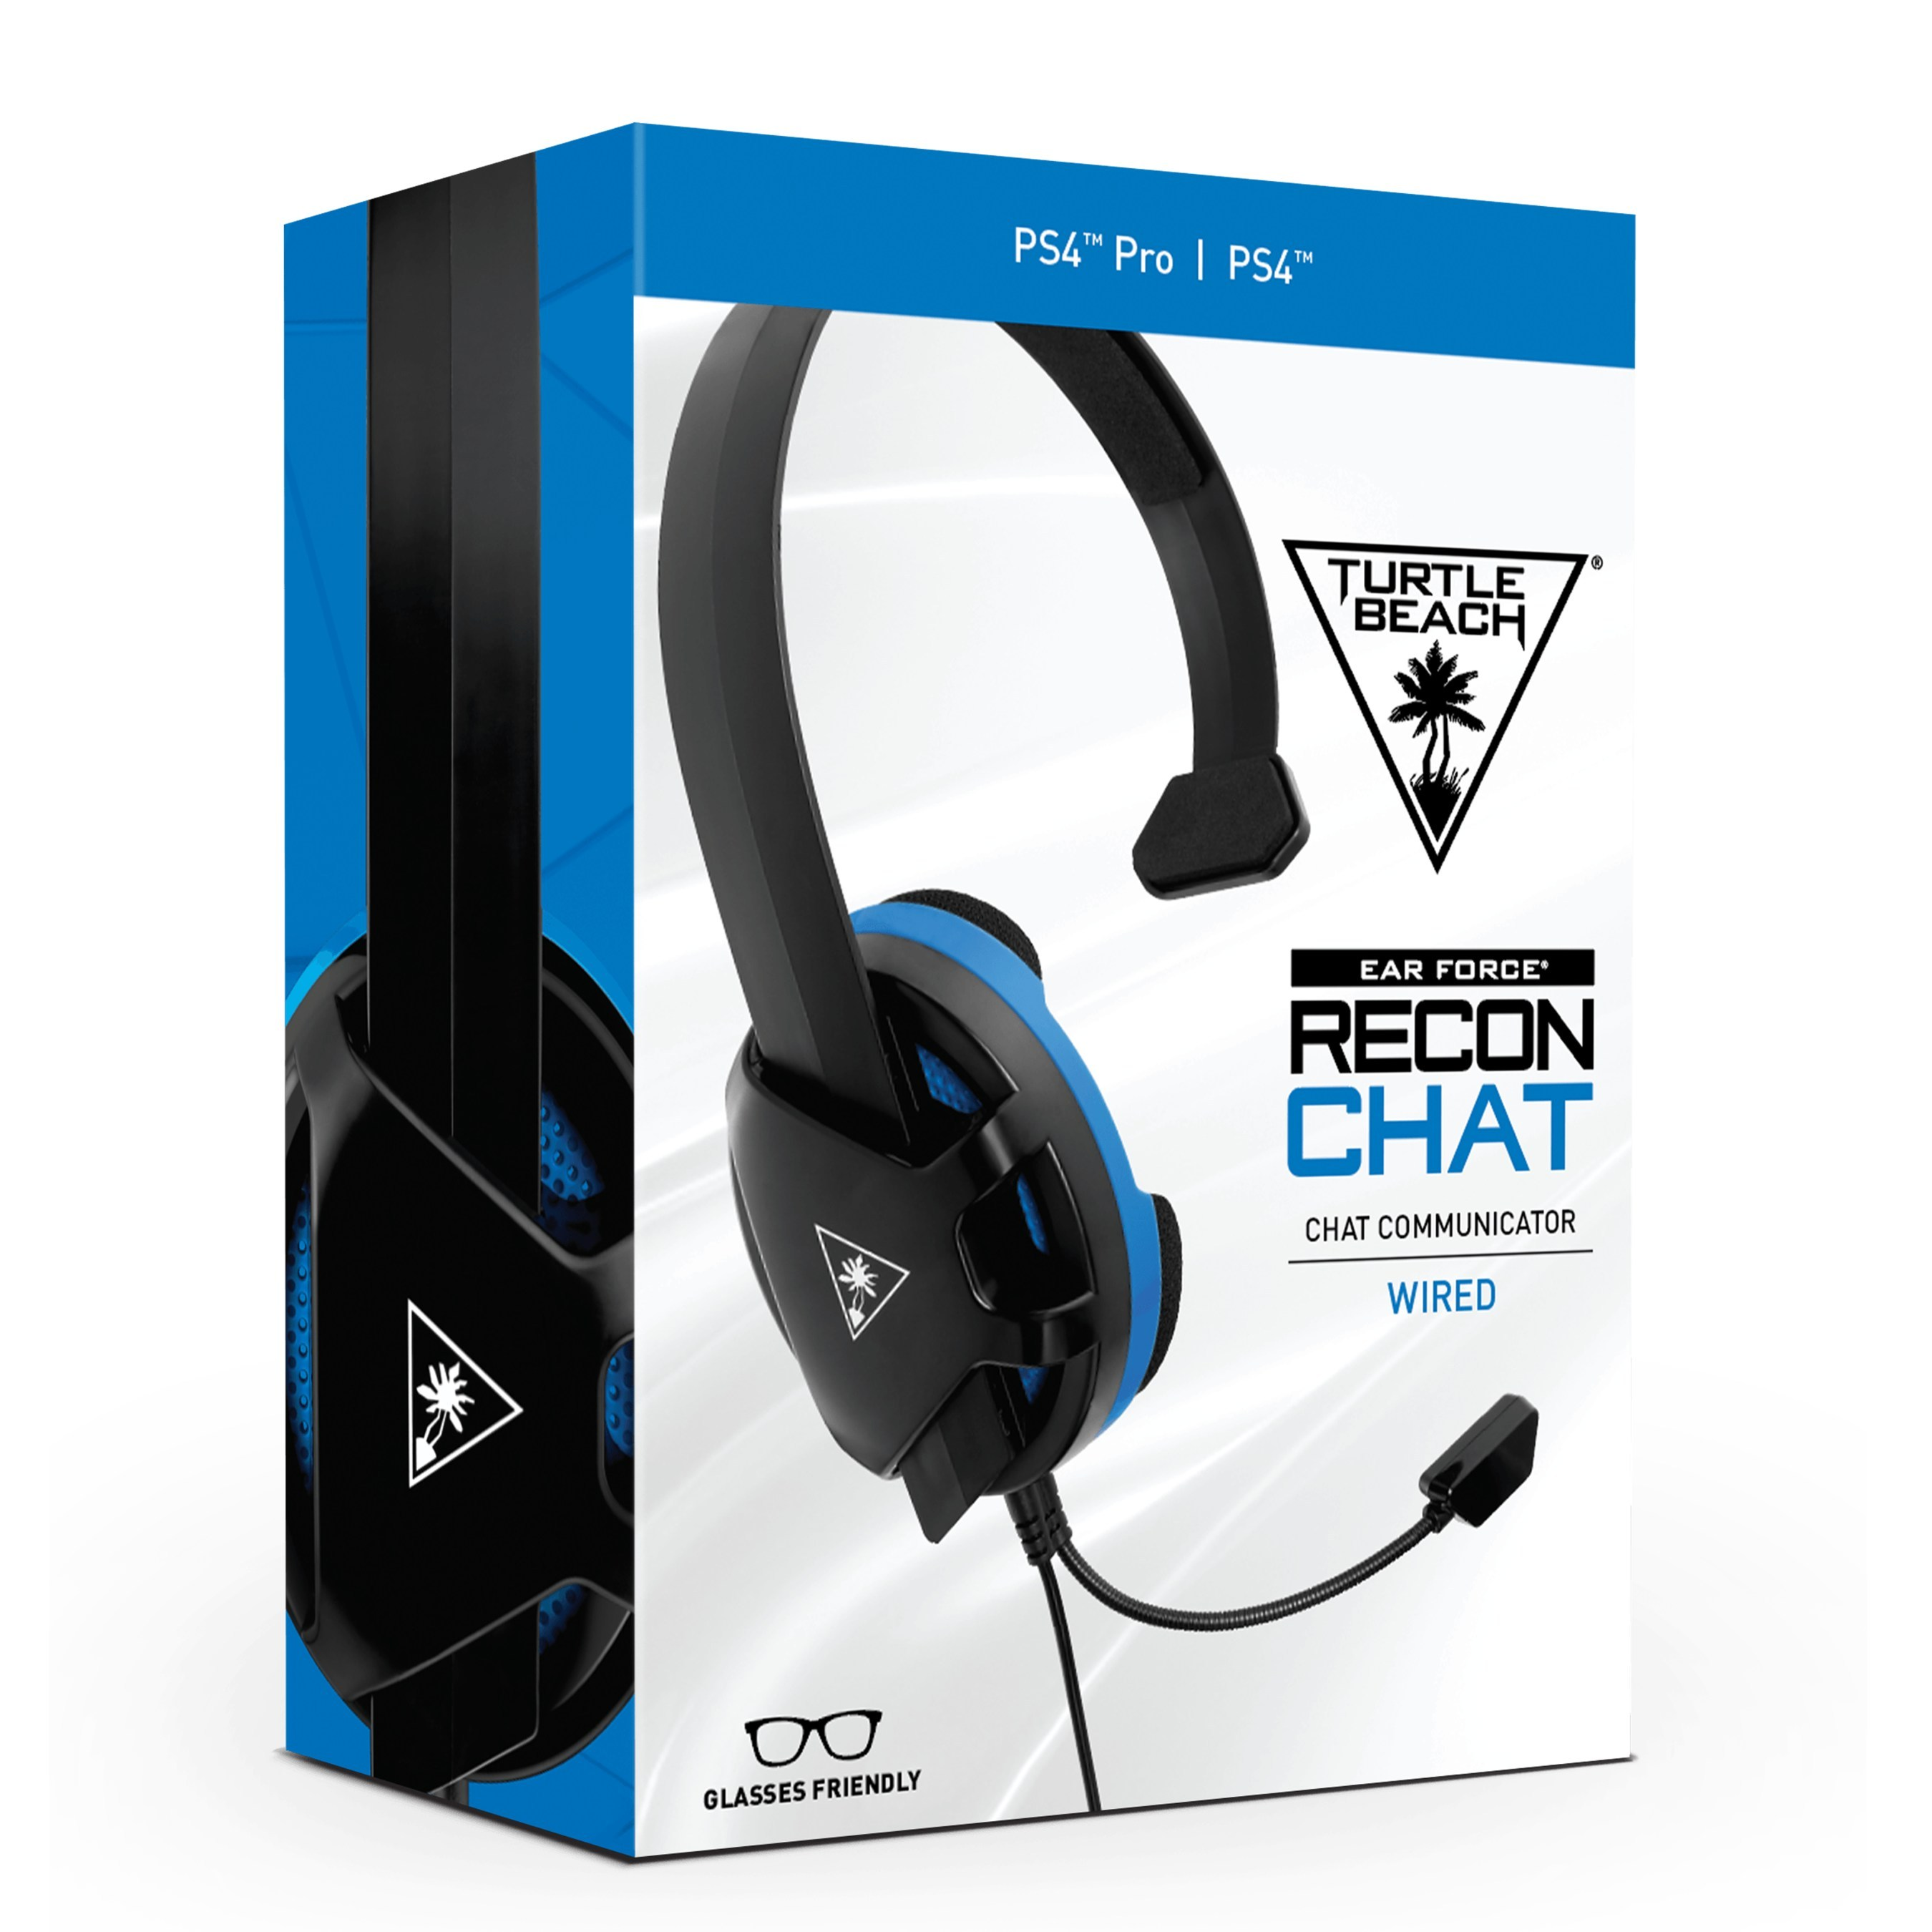 Recon Chat Headset Review Otaku Dome The Latest News